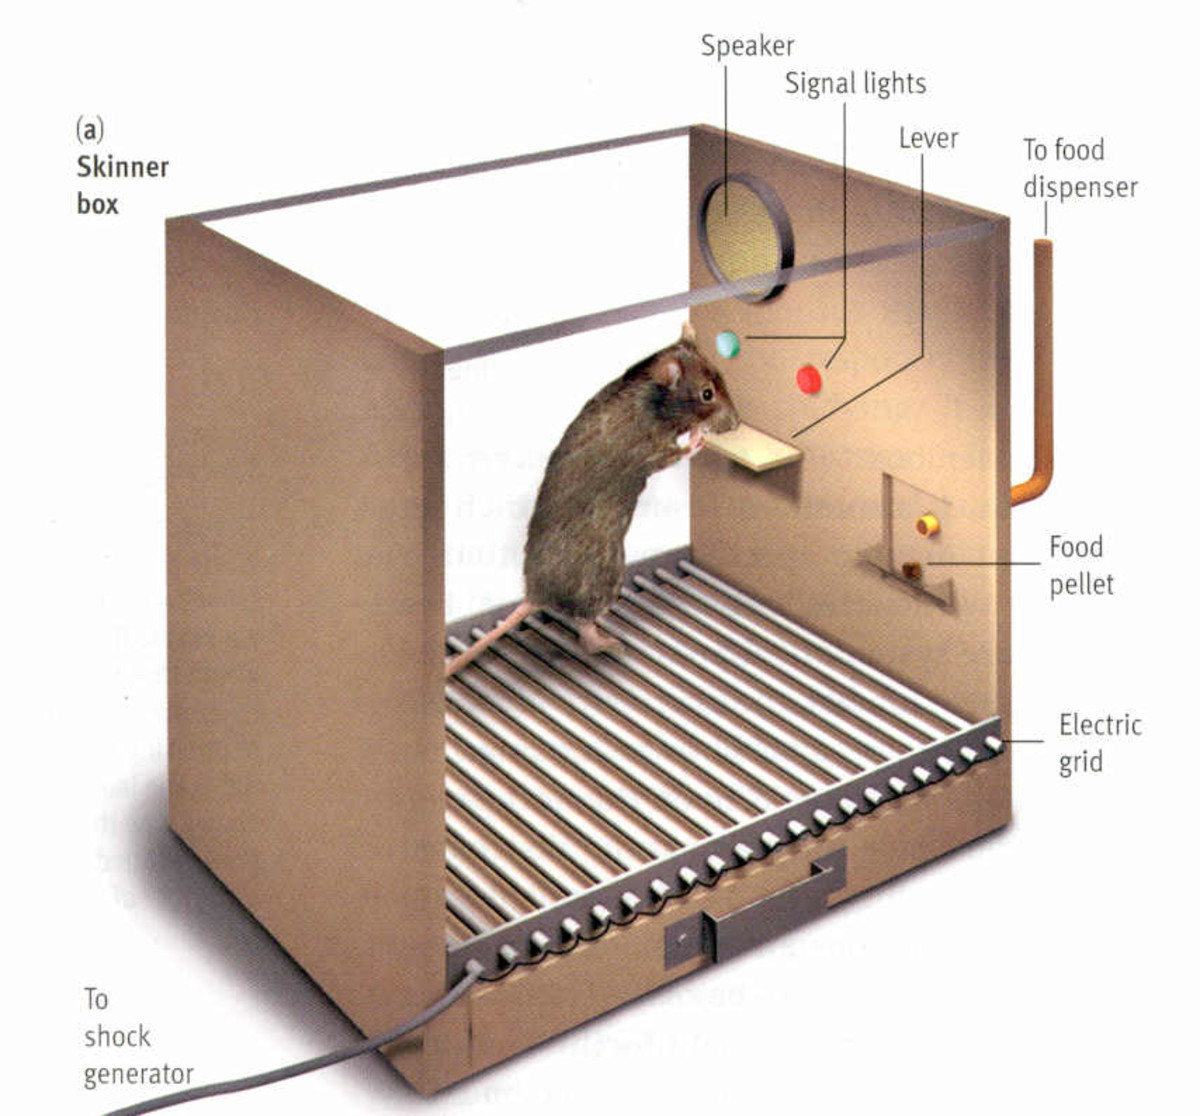 This is a mouse getting a piece of food in a Skinner's Box scenario. This is also you playing an addictive video game. You just don't realize it yet.